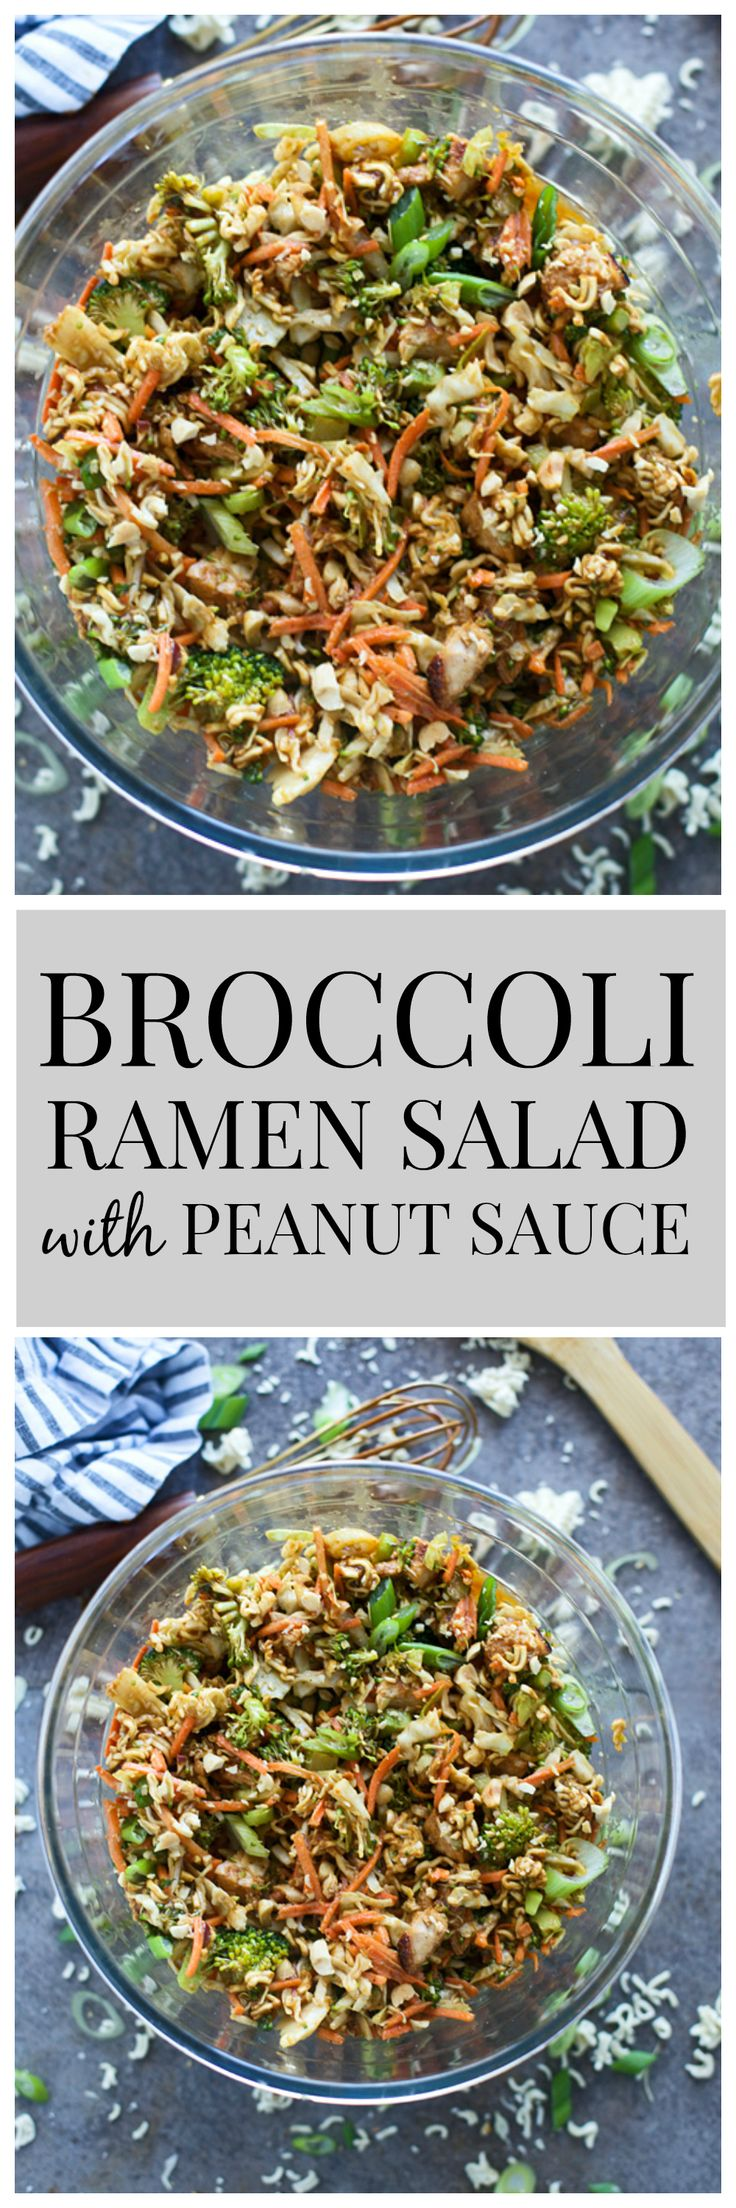 Broccoli Ramen Salad with Peanut Sauce - An updated take on a classic Asian ramen salad!